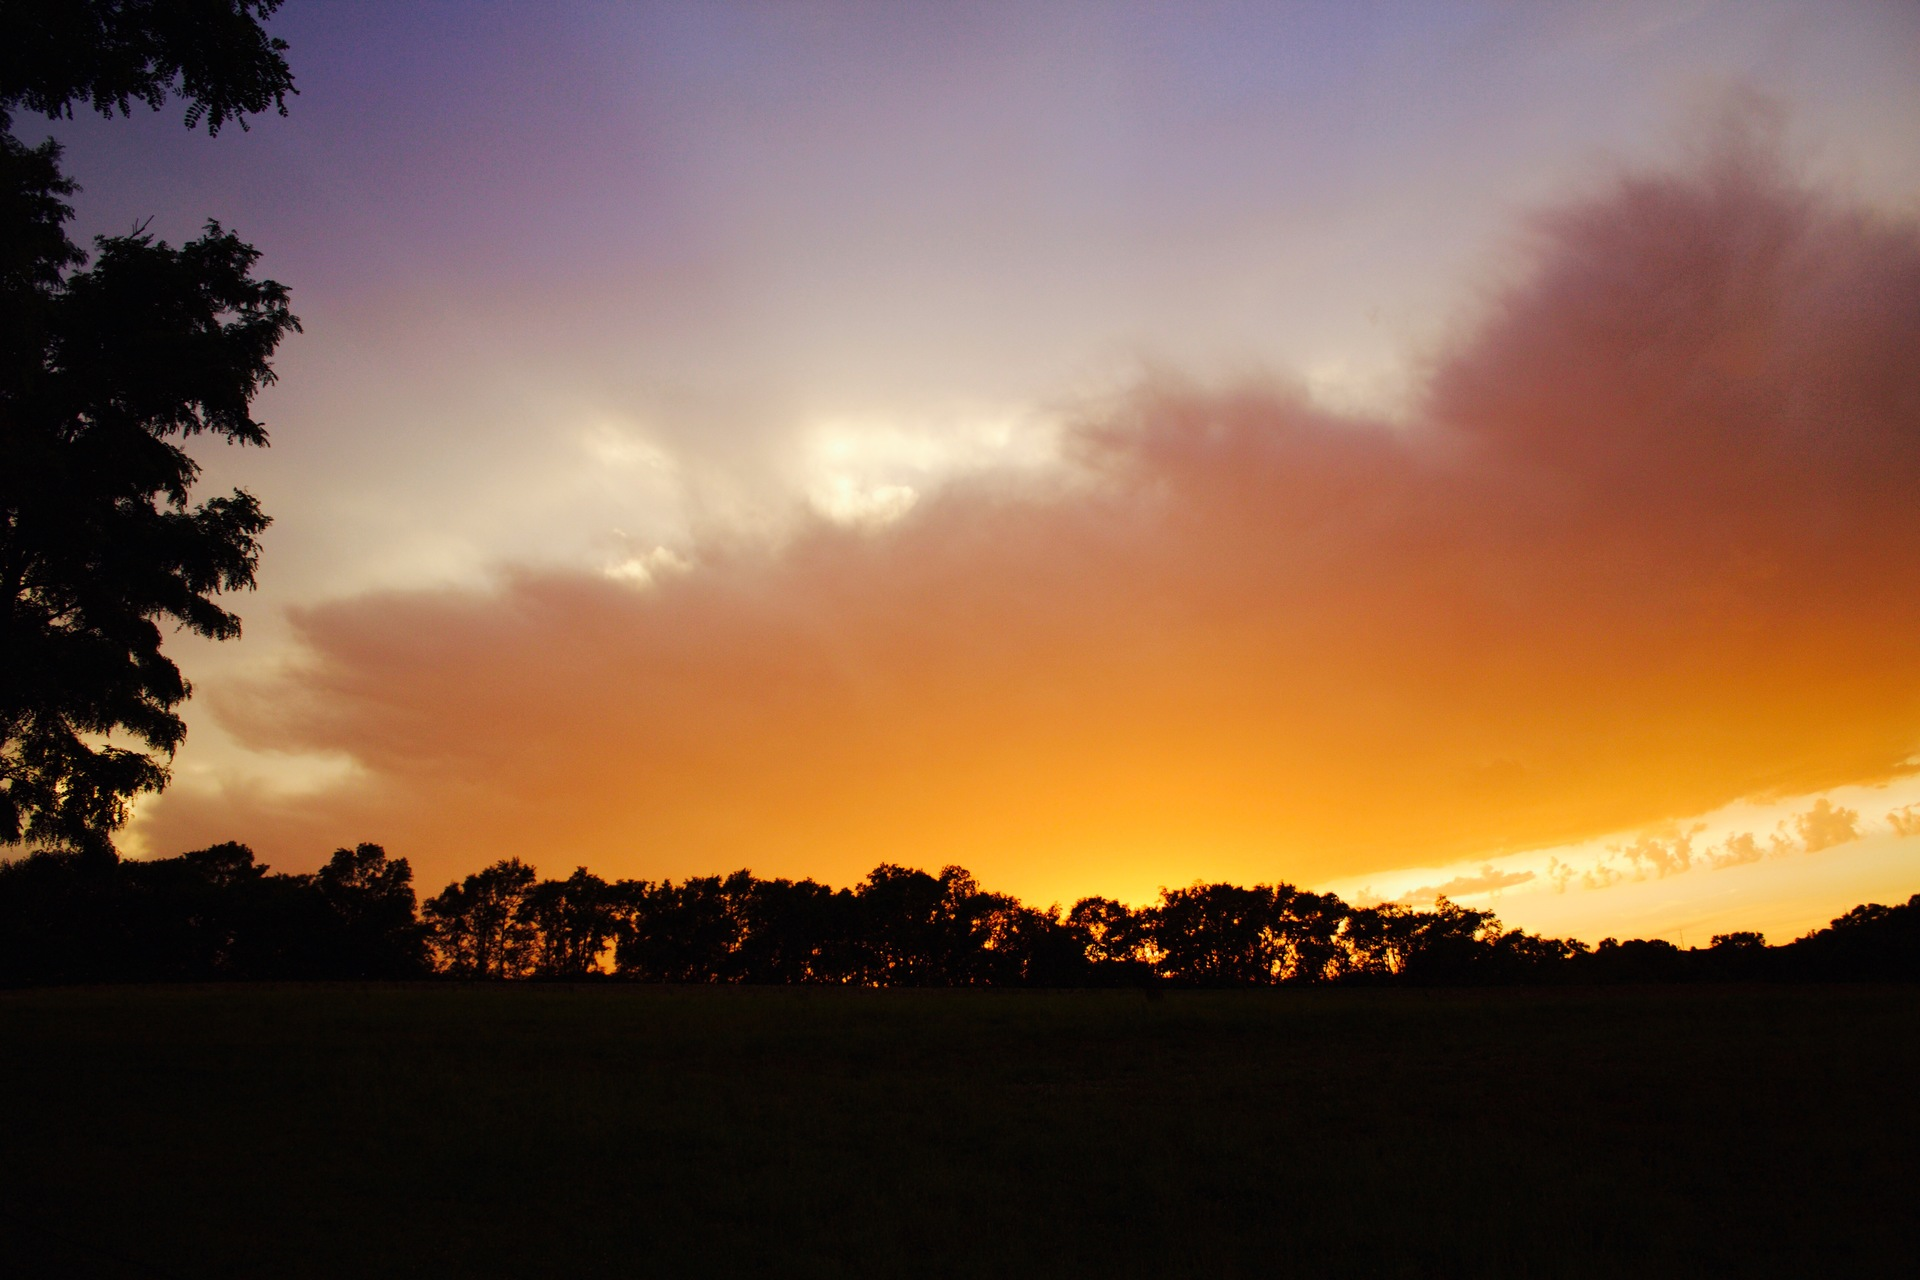 Orange Color Story - sunset before a storm